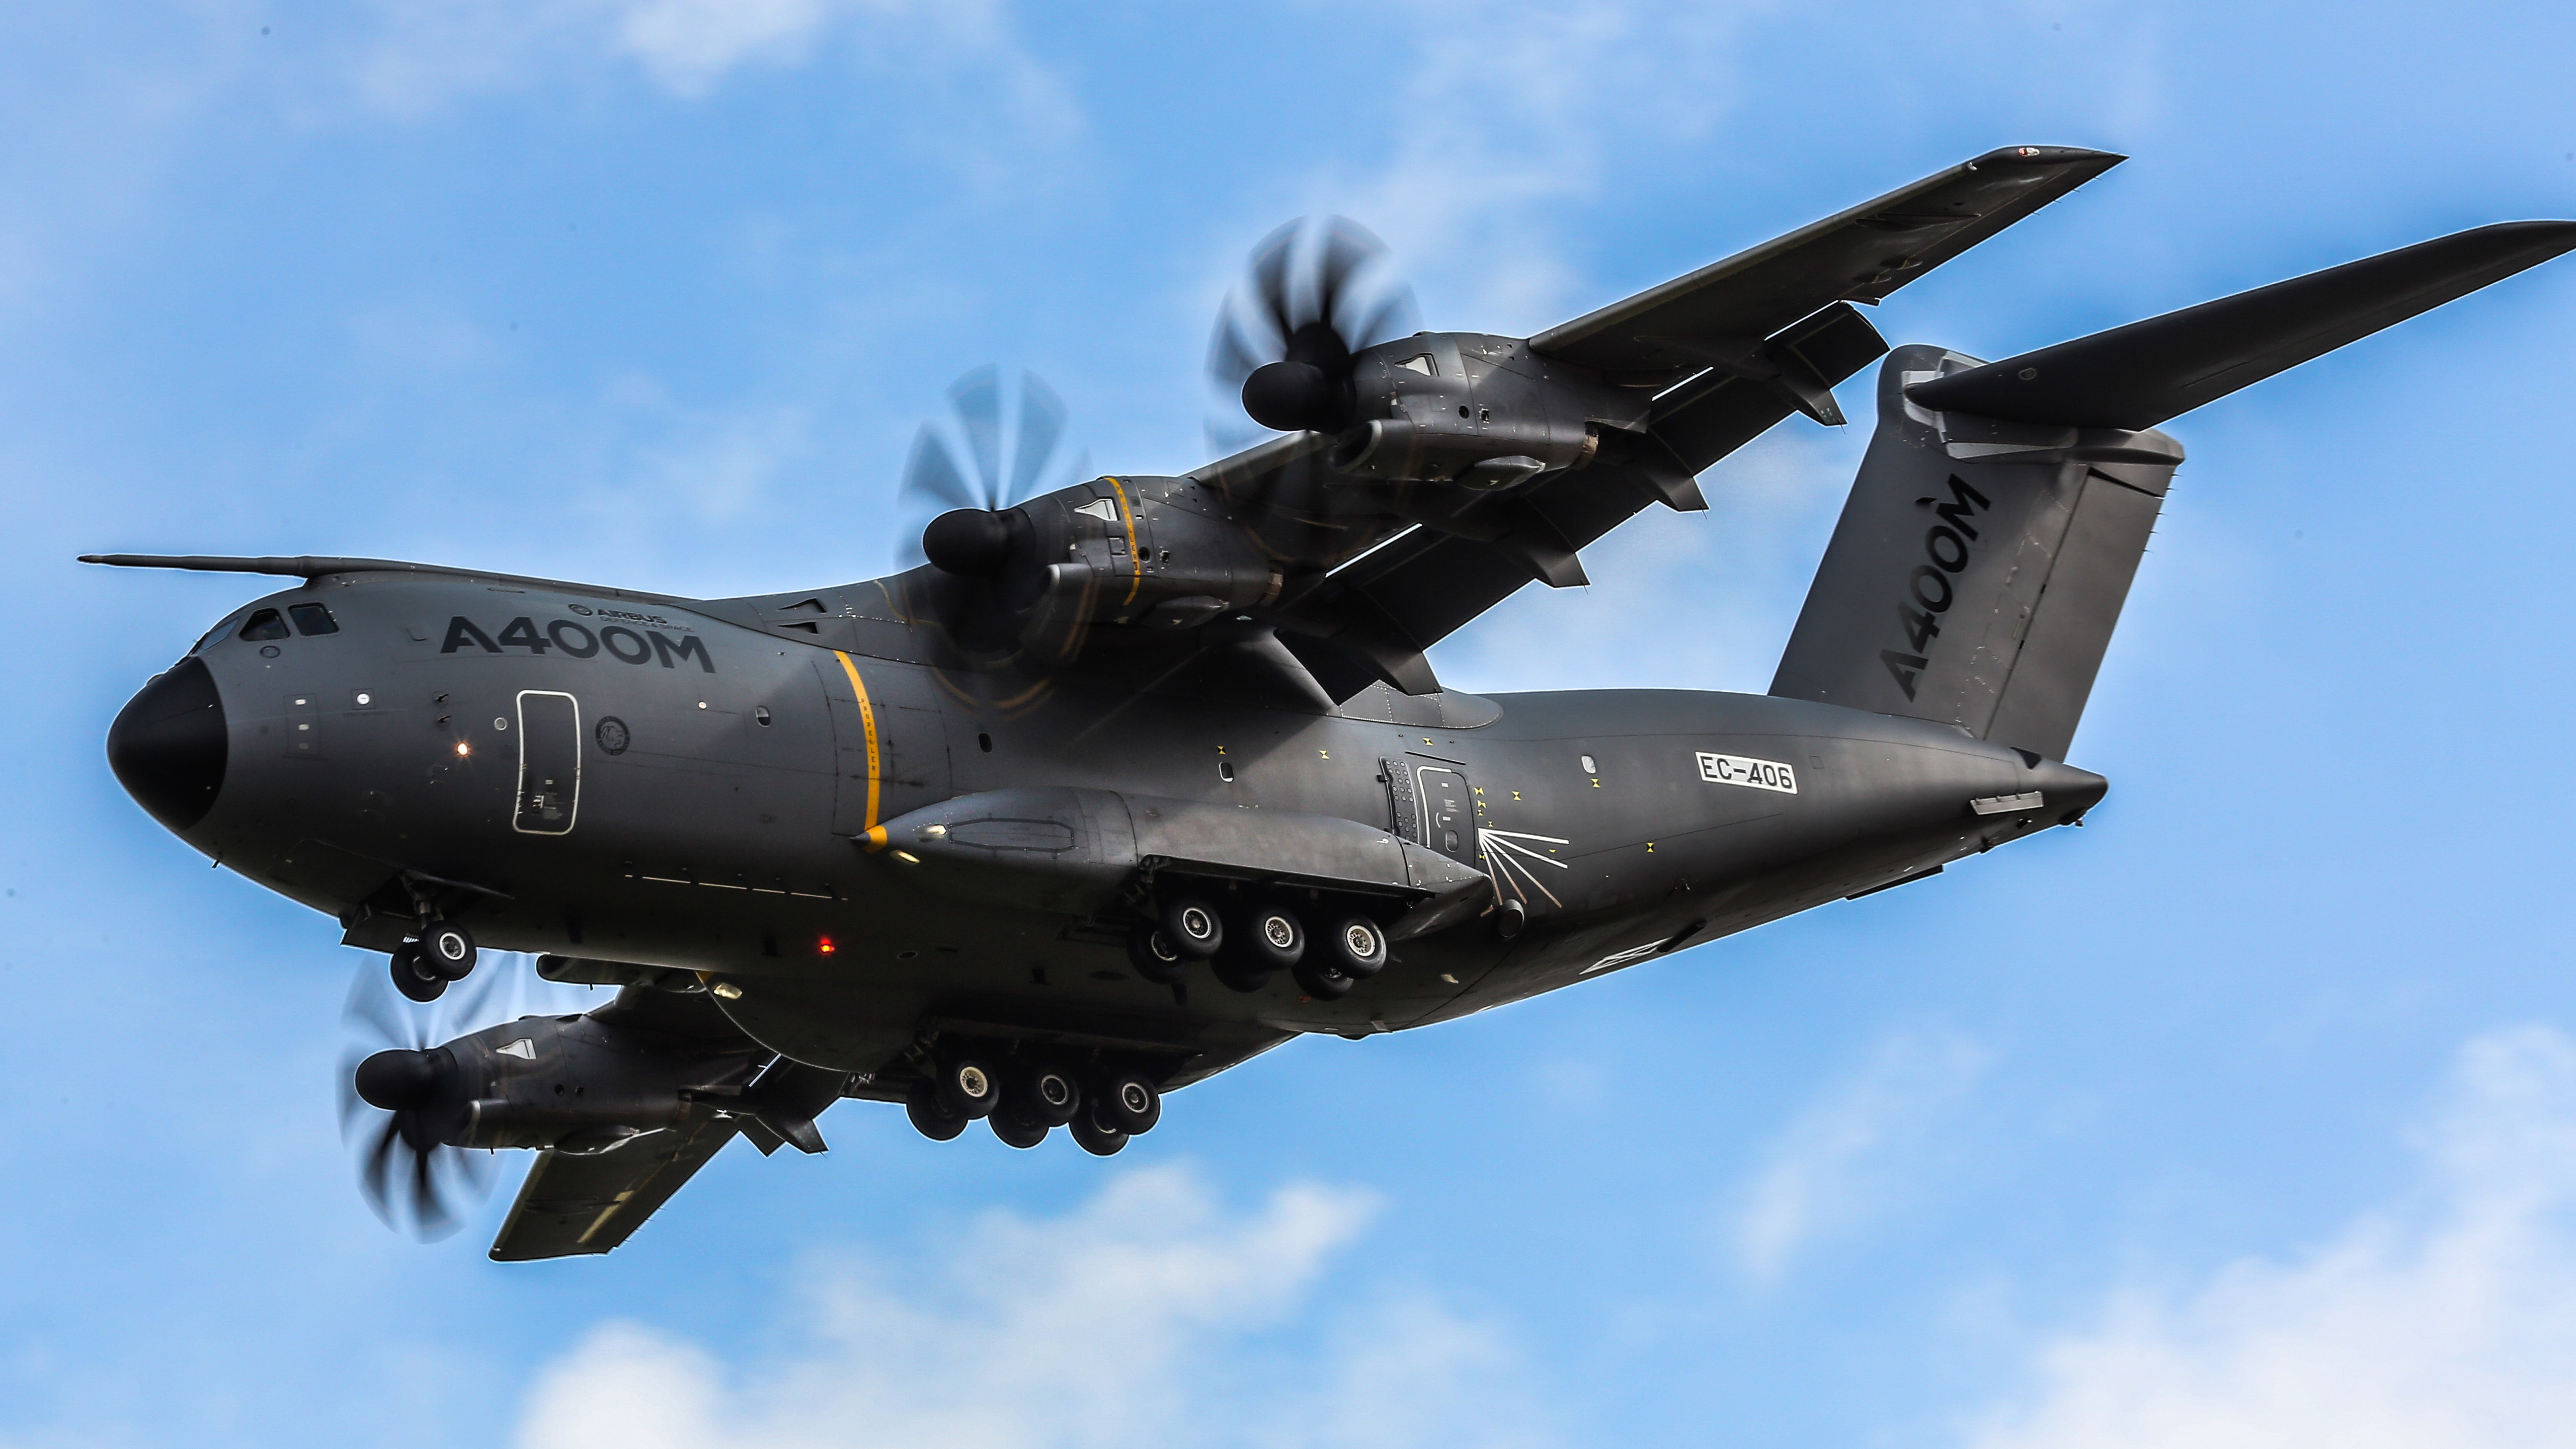 Airbus A400M Atlas Military Transport Aircraft9442815661 - Airbus A400M Atlas Military Transport Aircraft - Transport, Military, EC665, Atlas, aircraft, Airbus, A400M